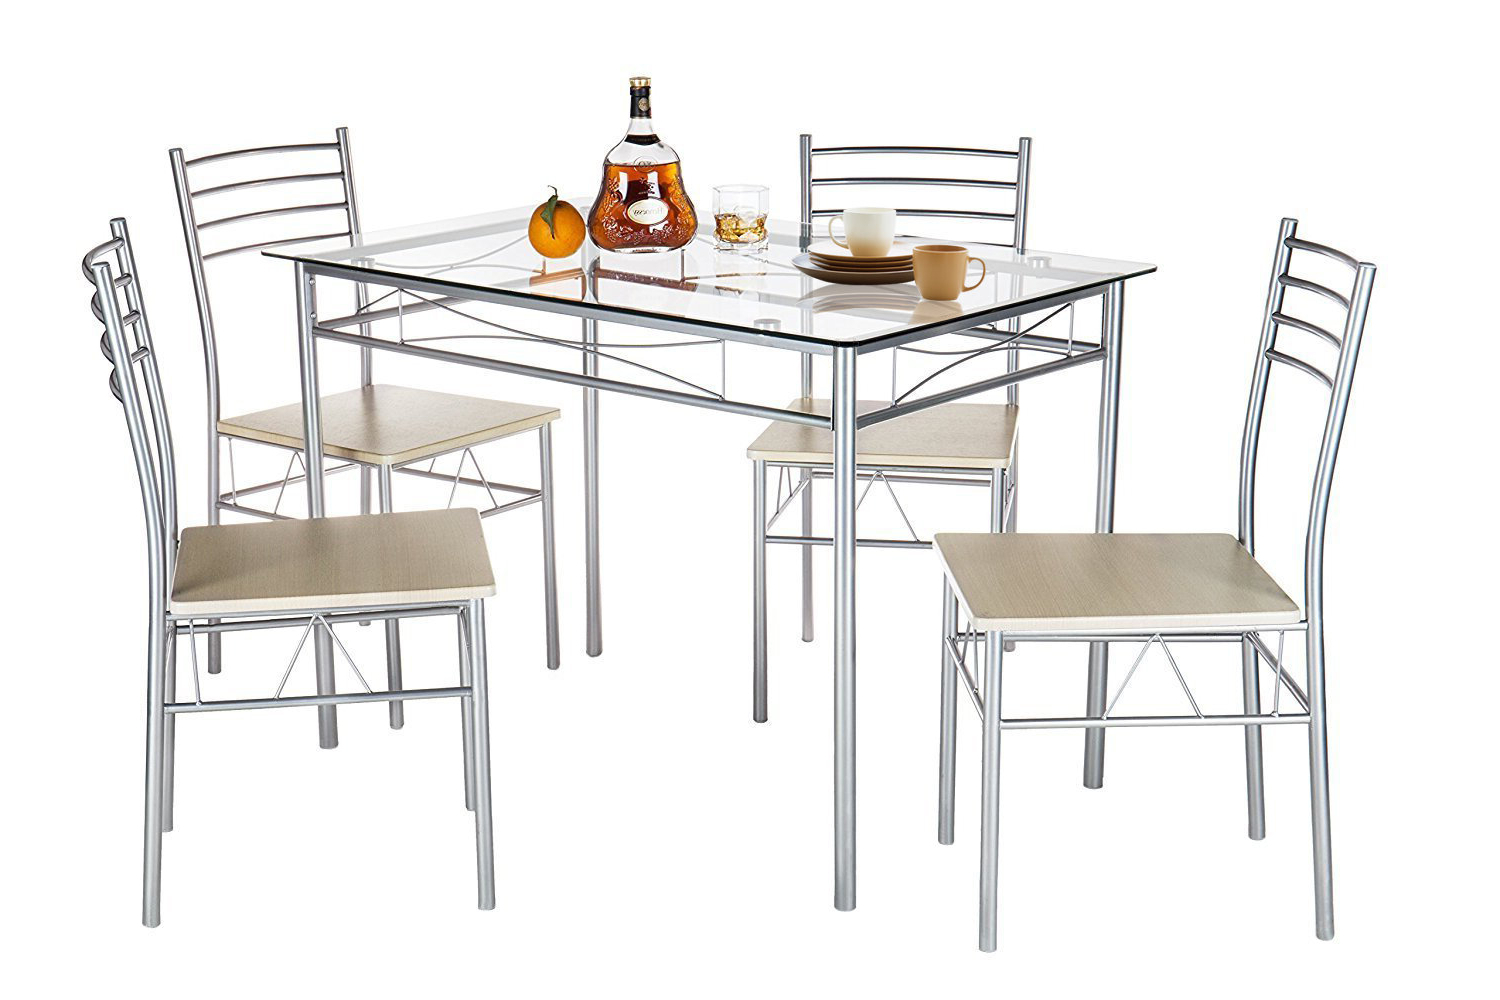 Lightle 5 Piece Breakfast Nook Dining Sets Pertaining To Famous Ebern Designs Liles 5 Piece Breakfast Nook Dining Set & Reviews (View 3 of 25)